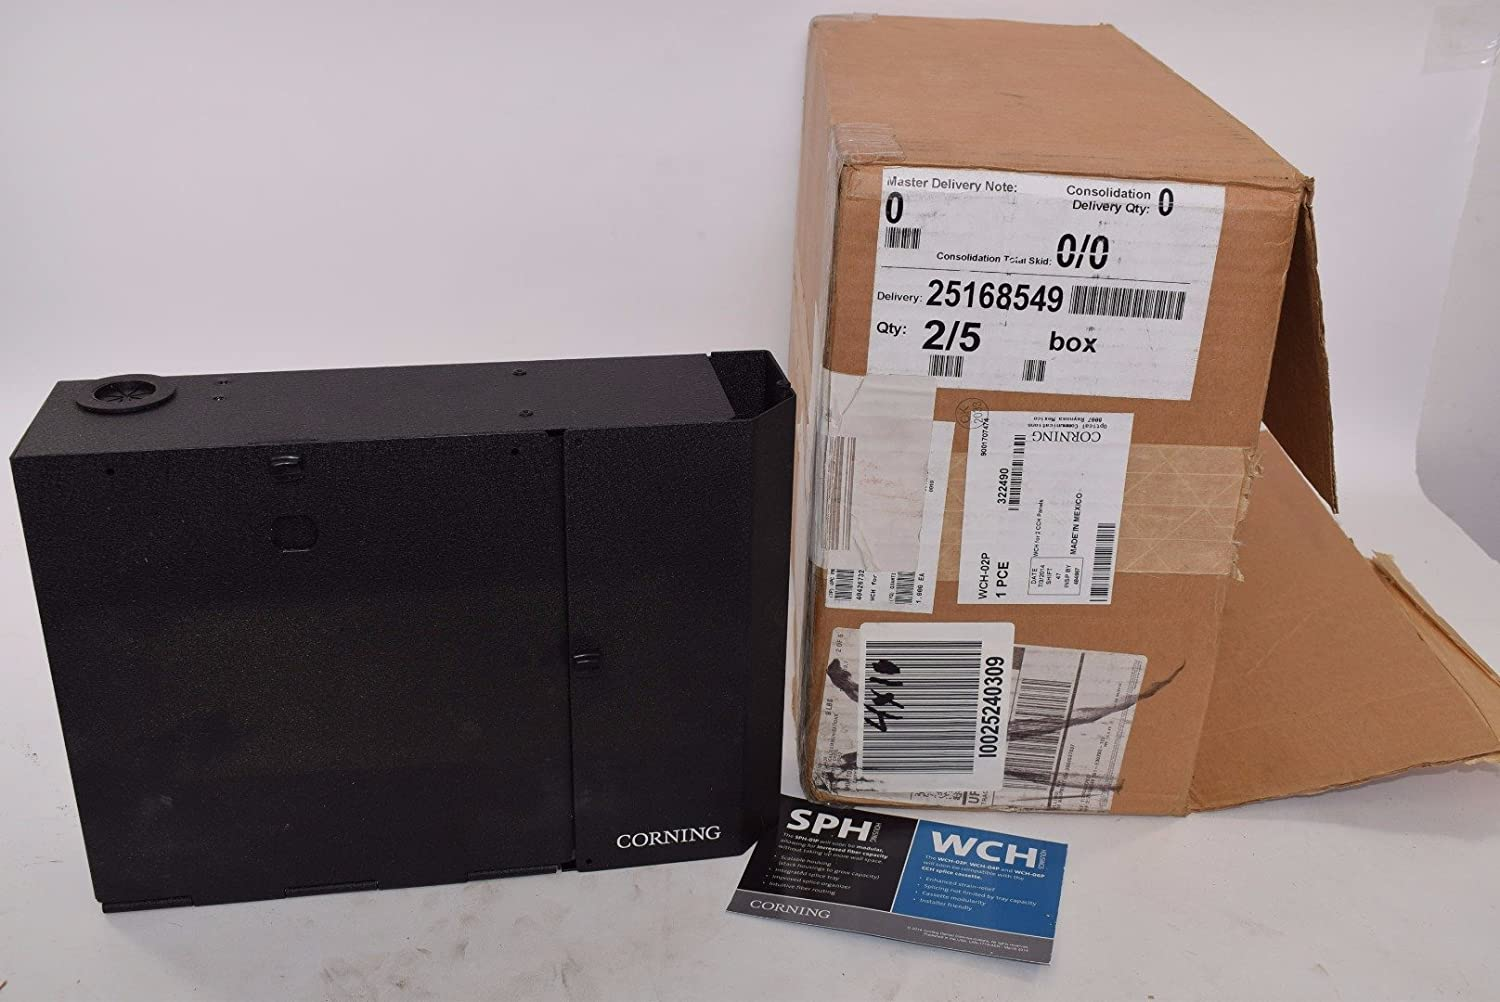 Wch 02p Corning Wch Wall Mount Housing For 2 Cch Panels Fiber Optic Connectors Amazon Com Industrial Scientific